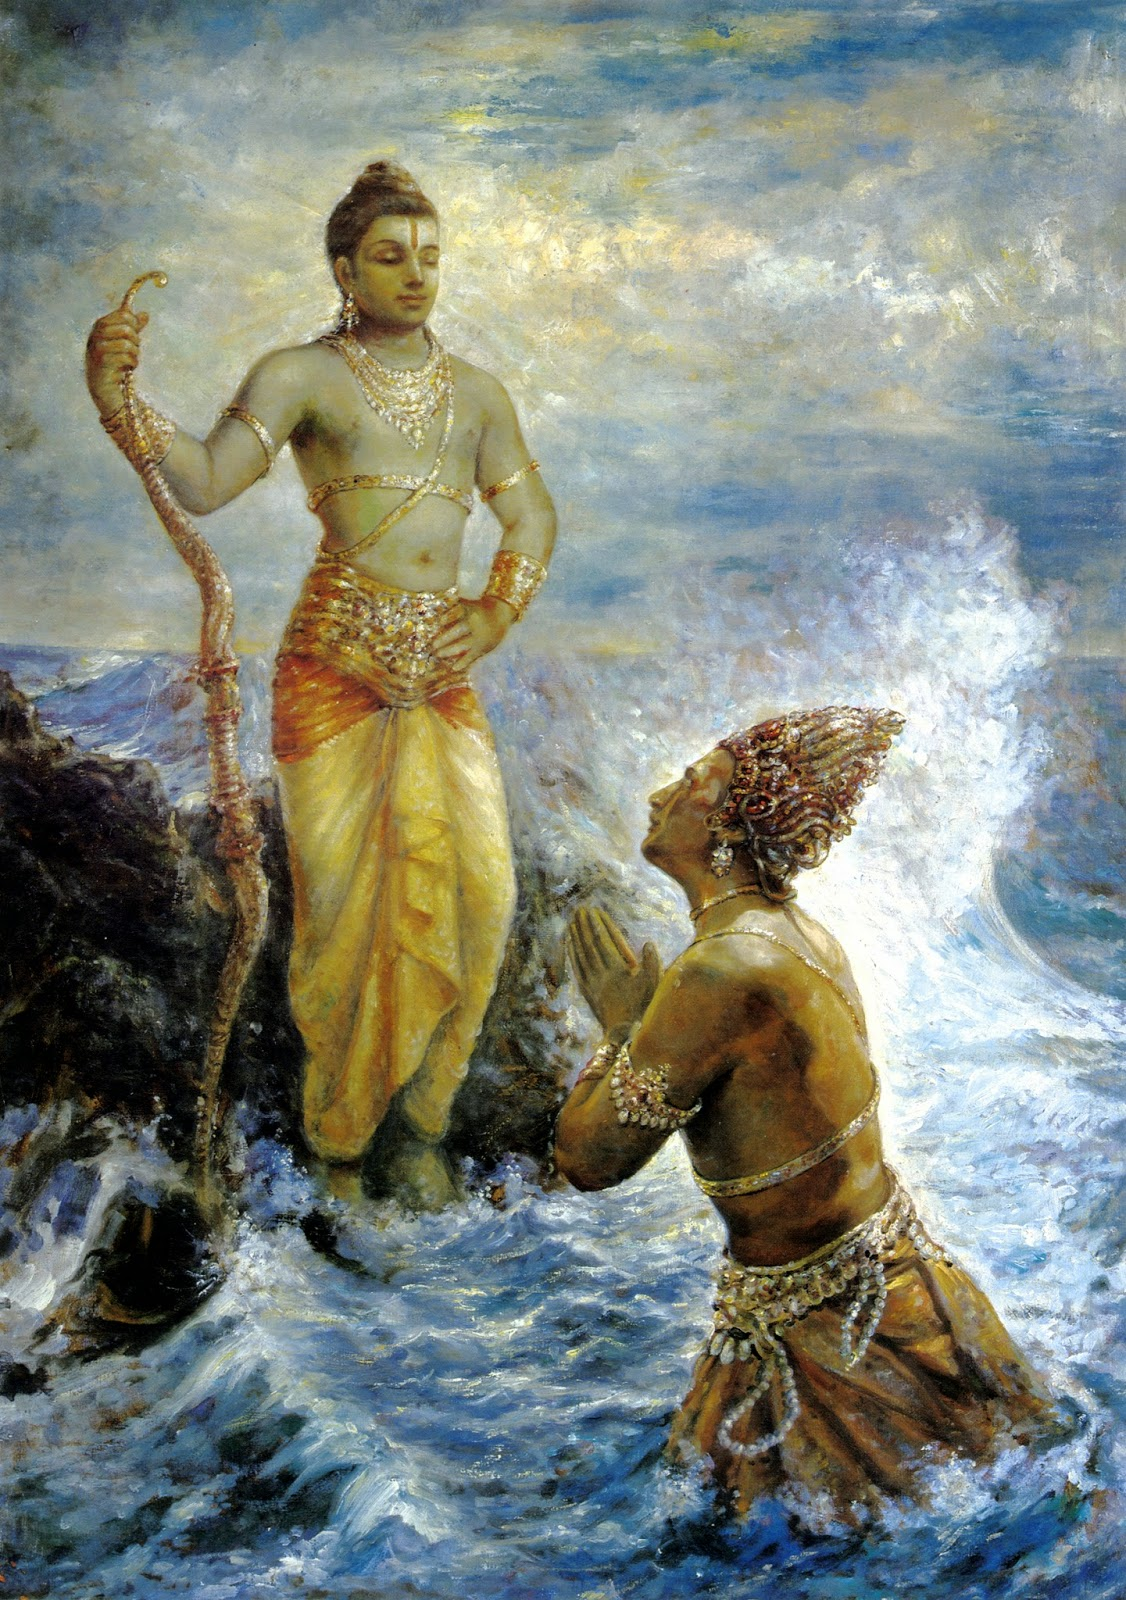 why rama is the most popularly worshiped deity in hinduism Lord venkateswara, popularly known as balaji, is the manifestations of lord  vishnu, who has incarnated  most hindus worship lord shiva as a member of  the hindu trinity  lord rama is the seventh avatar or reincarnation of lord  vishnu.